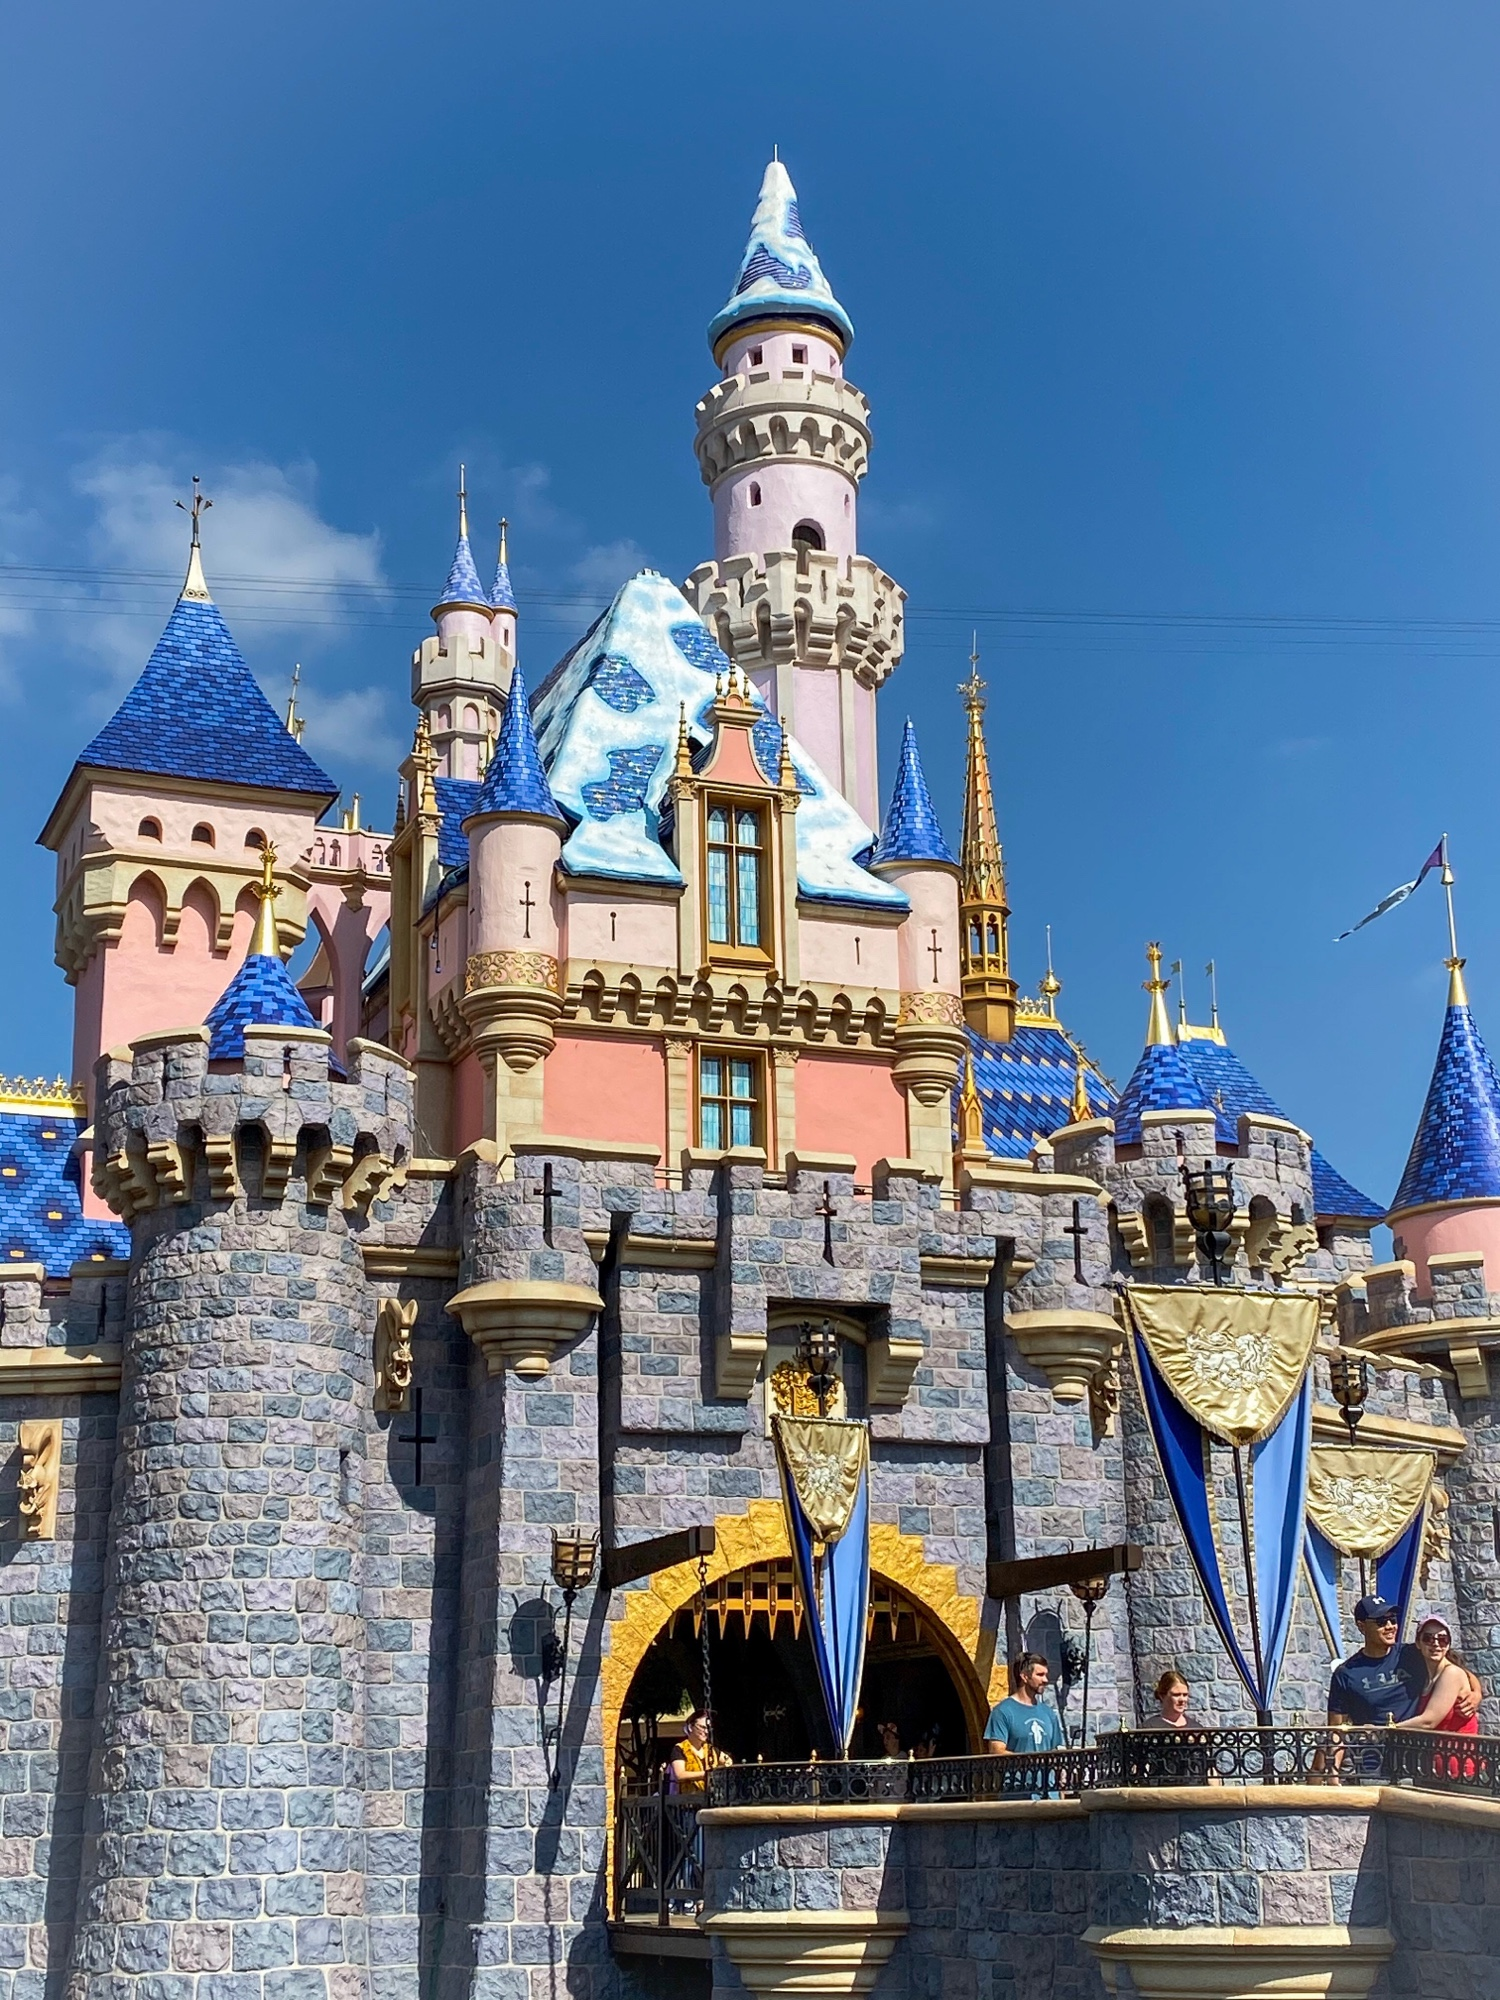 First Snowfall Added To Sleeping Beauty Castle For 2019